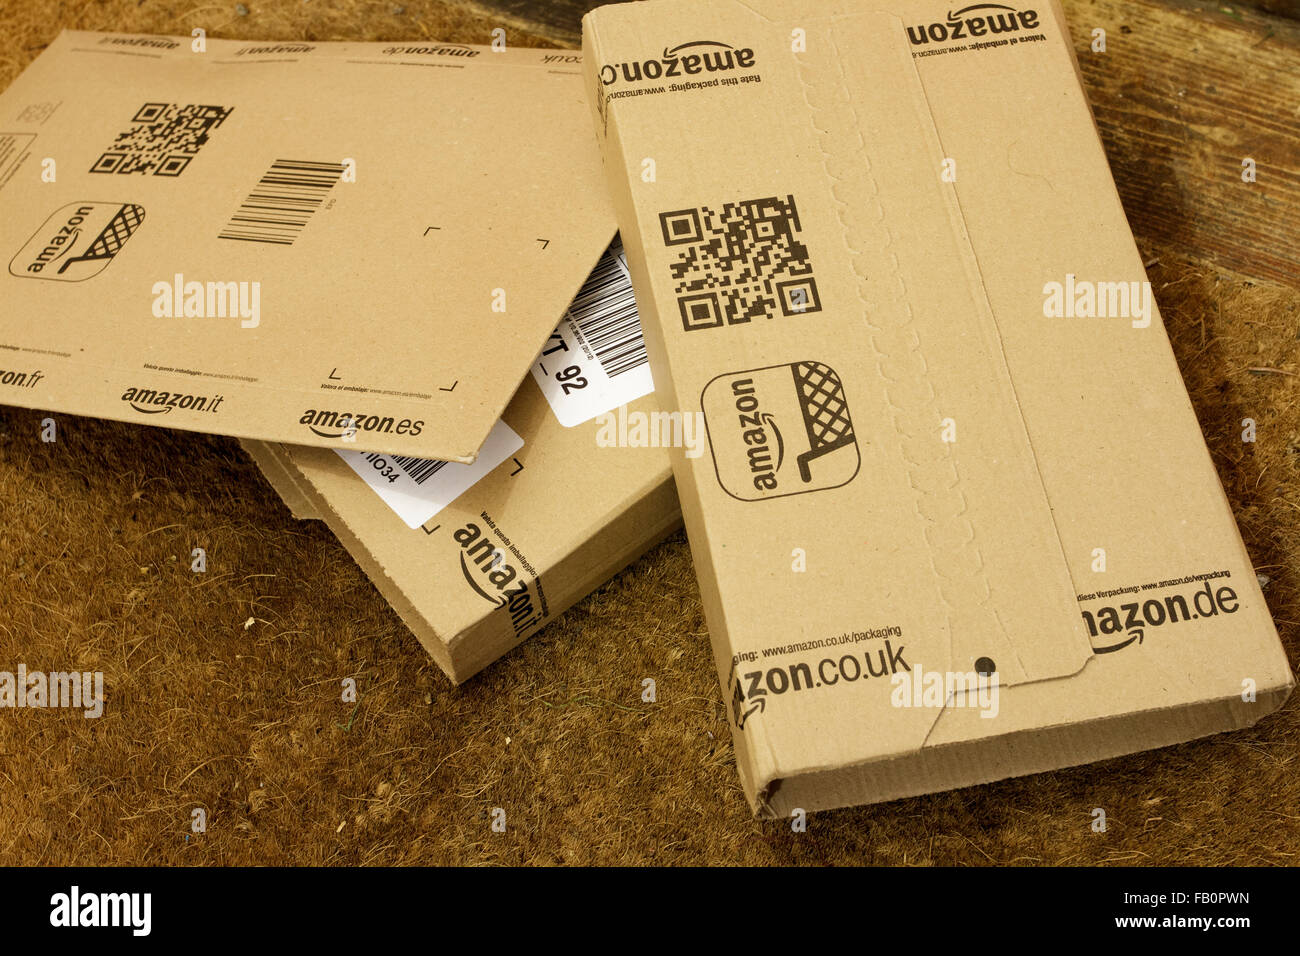 Amazon delivery boxes on the floor by the front door of house in England, UK - Stock Image